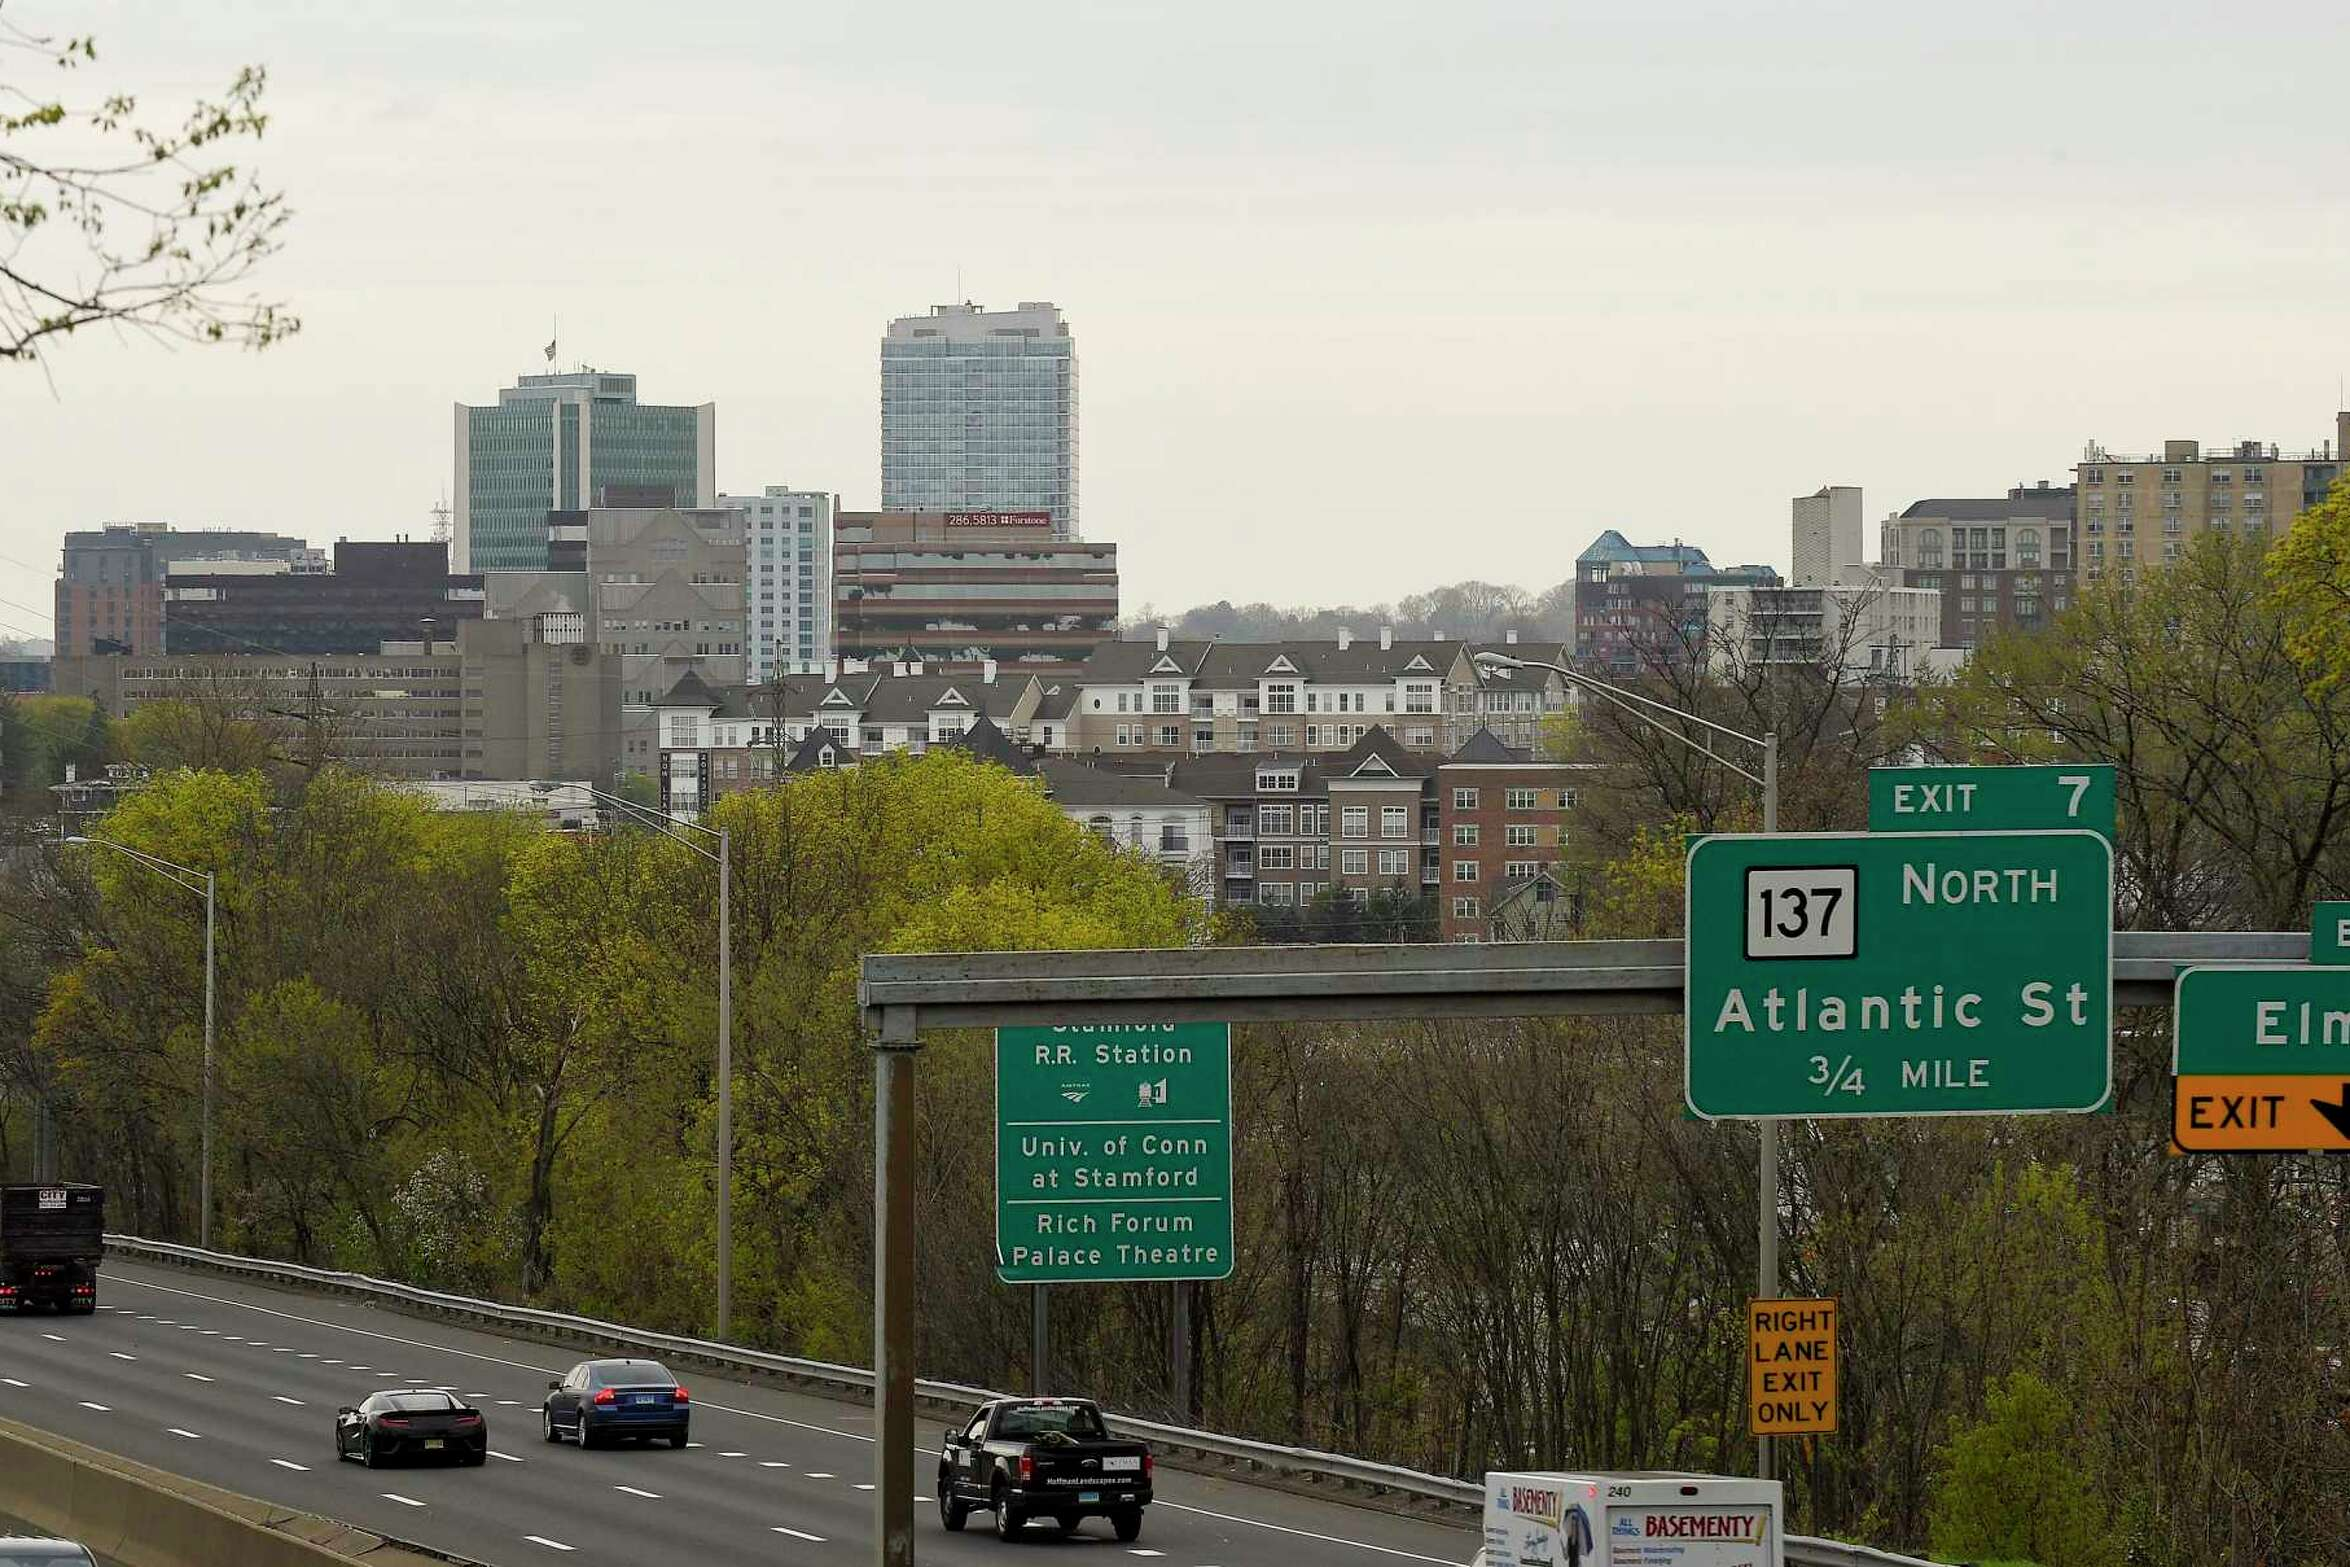 Stamford, which has the largest workforce among Connecticut's cities, will be crucial to Connecticut's economic recovery from the coronavirus pandemic.